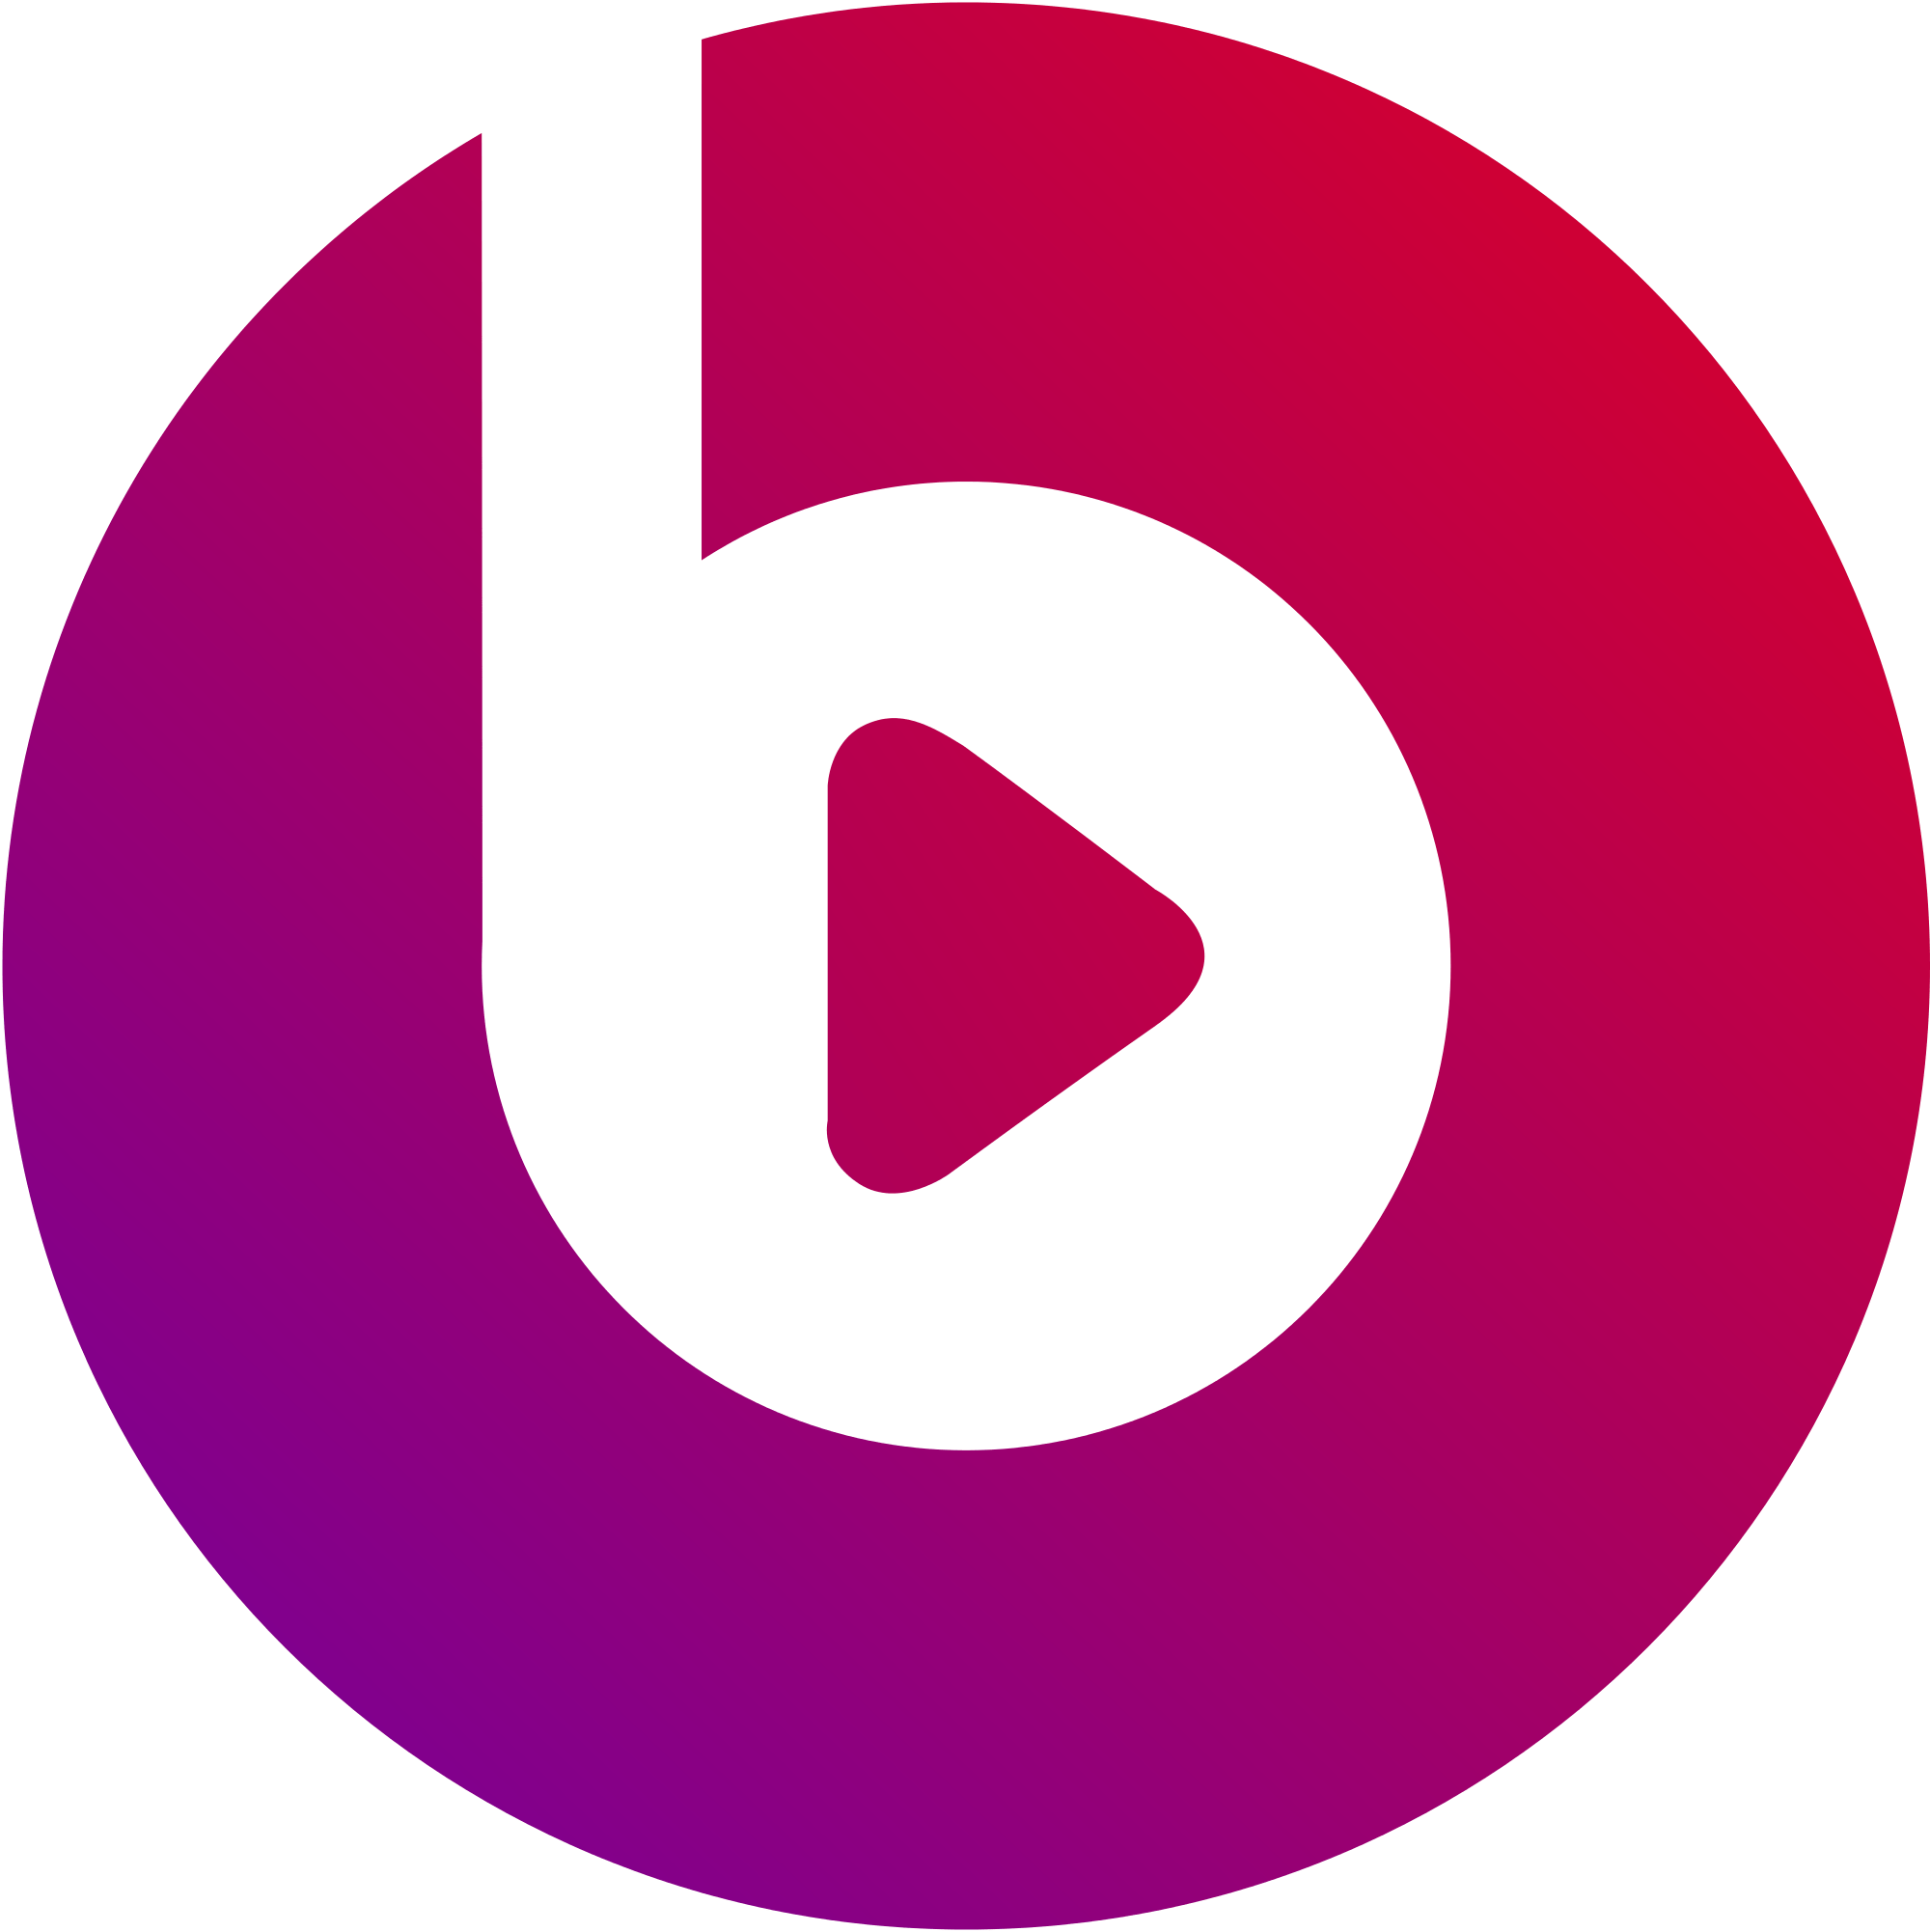 Beats logo png. Transparent stickpng